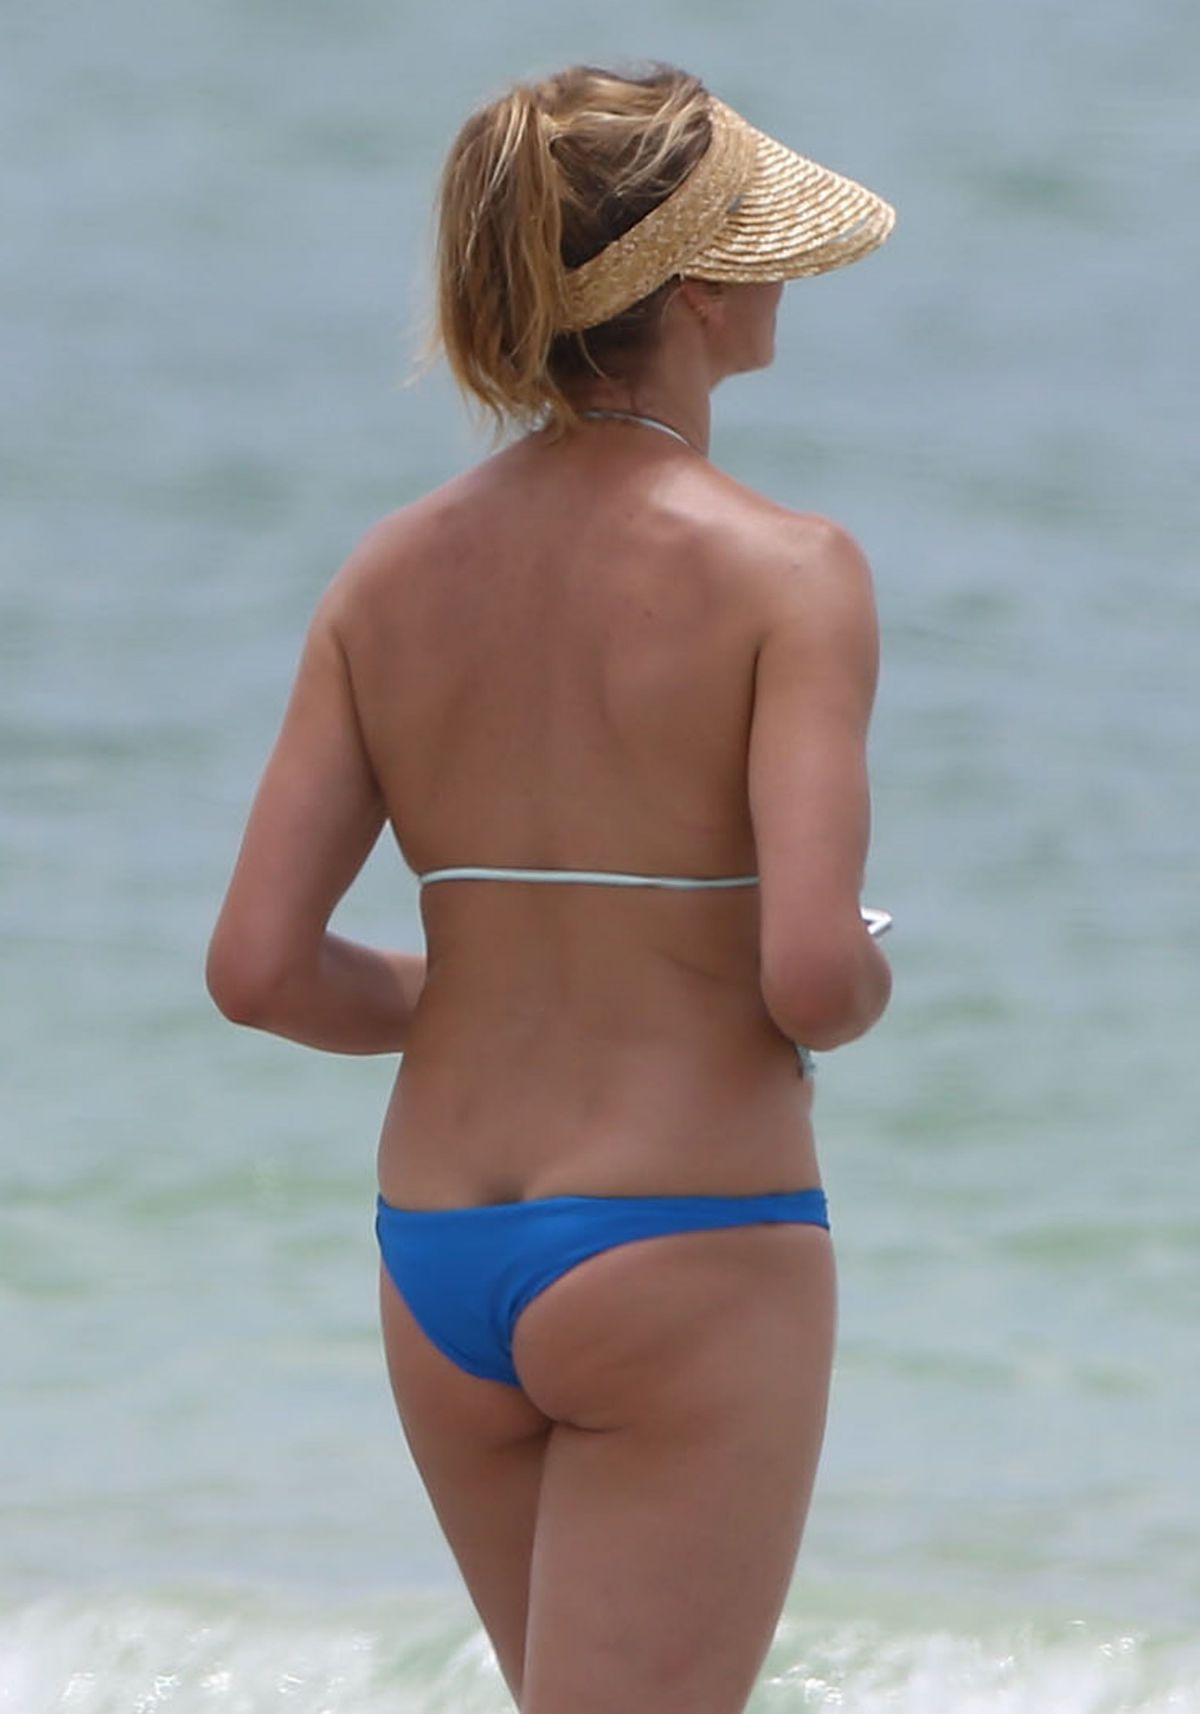 Cameron Diaz Wearing A Bikini In Florida - Celebzz